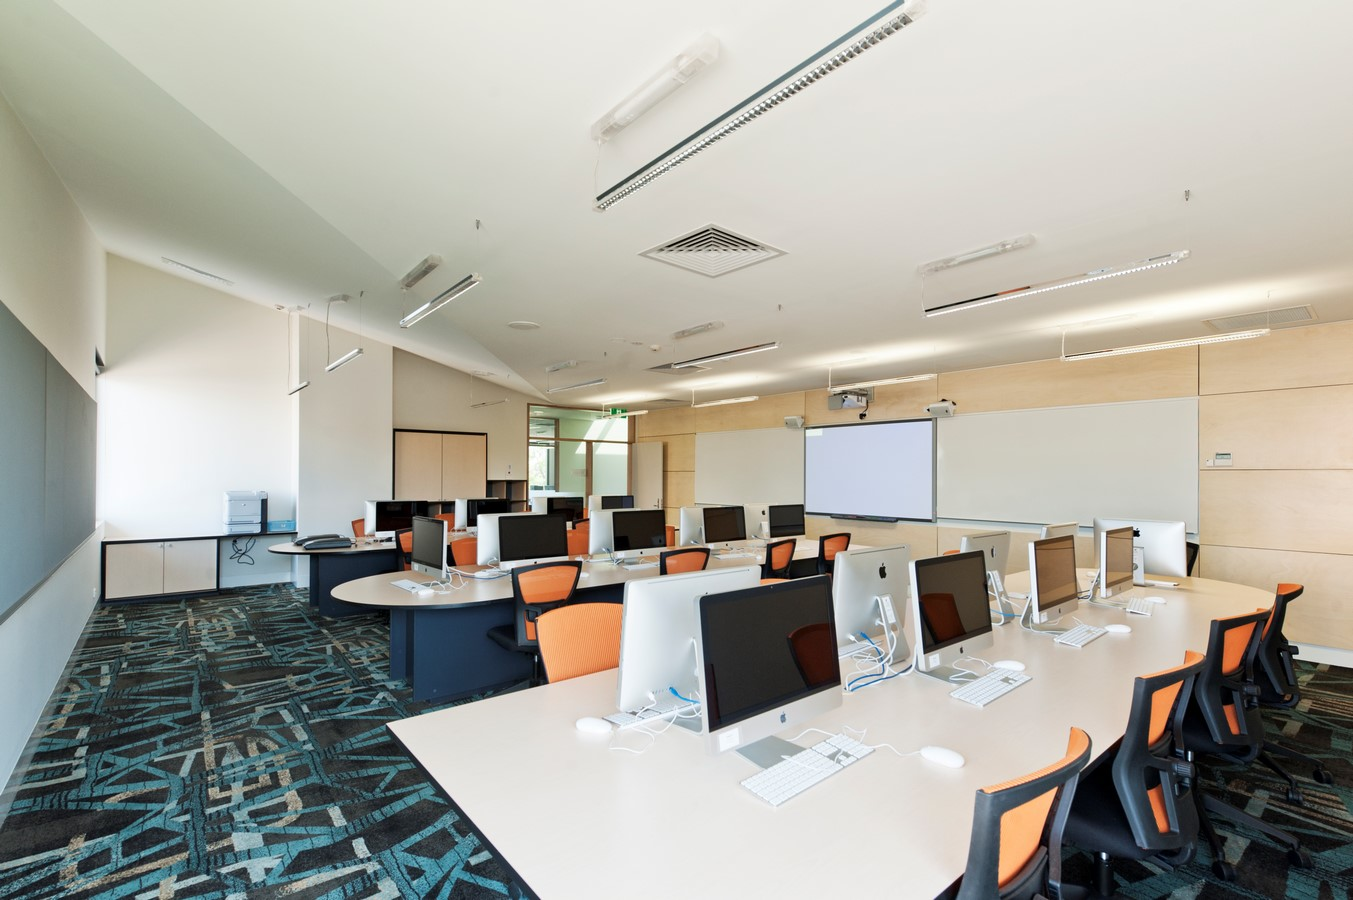 21 PLC Learning Resource Centre by Cox Architecture - Sheet2